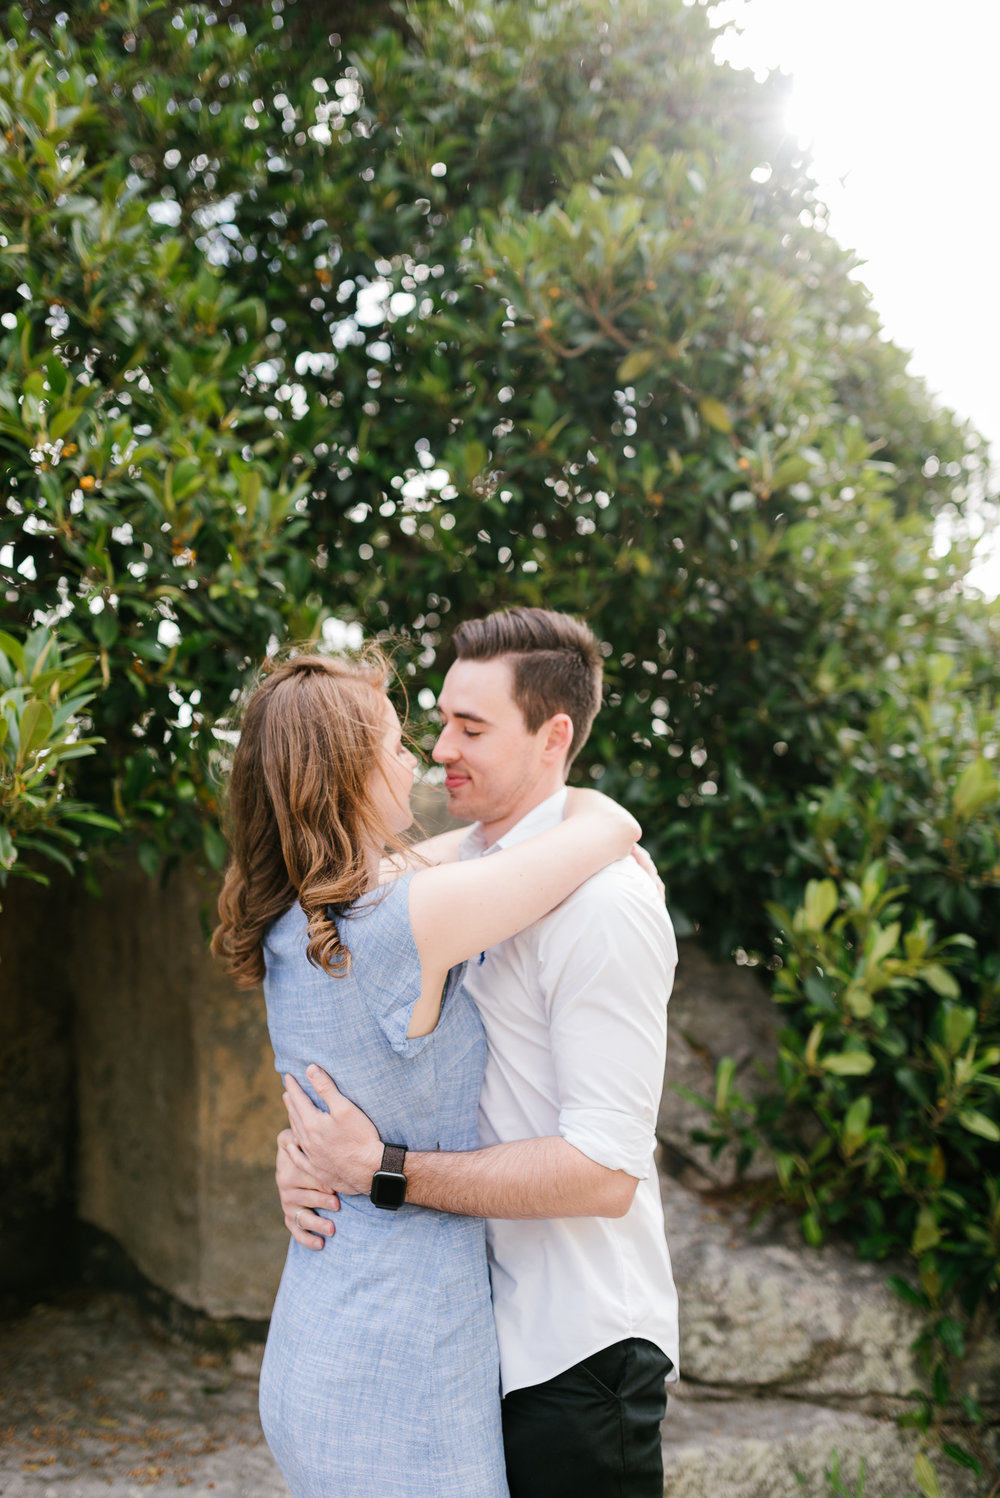 PhotographybyRenata_Proposal_Shoot_Watsons-Bay-Camp_Cove-22.JPG